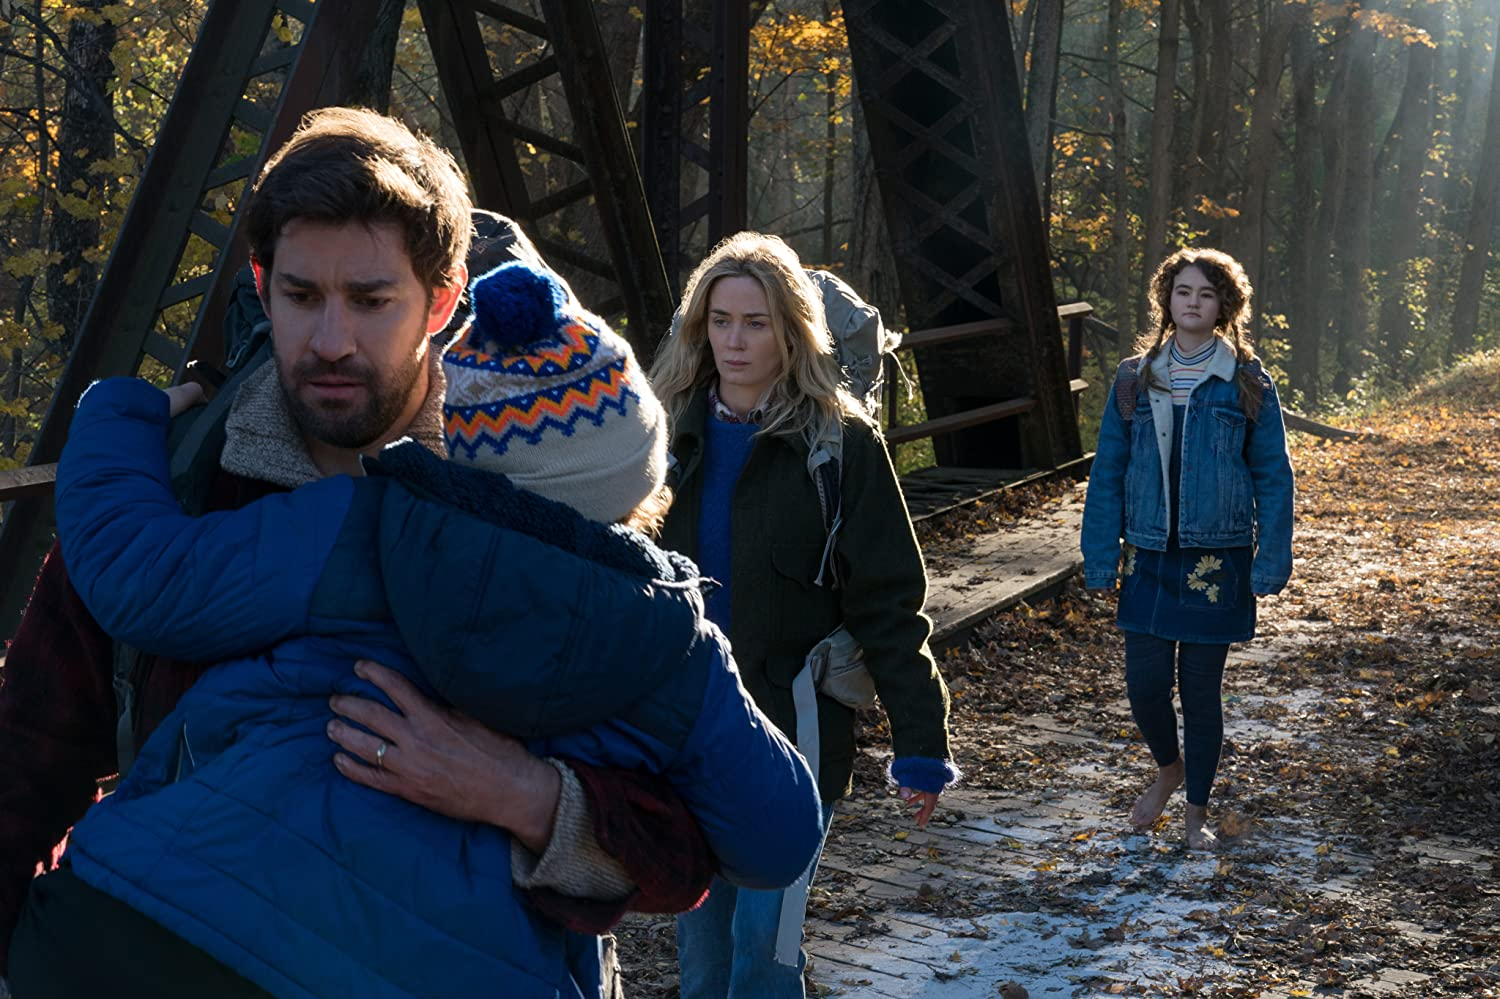 John Krasinski, Emily Blunt, Noah Jupe, and Millicent Simmonds in A Quiet Place (2018)